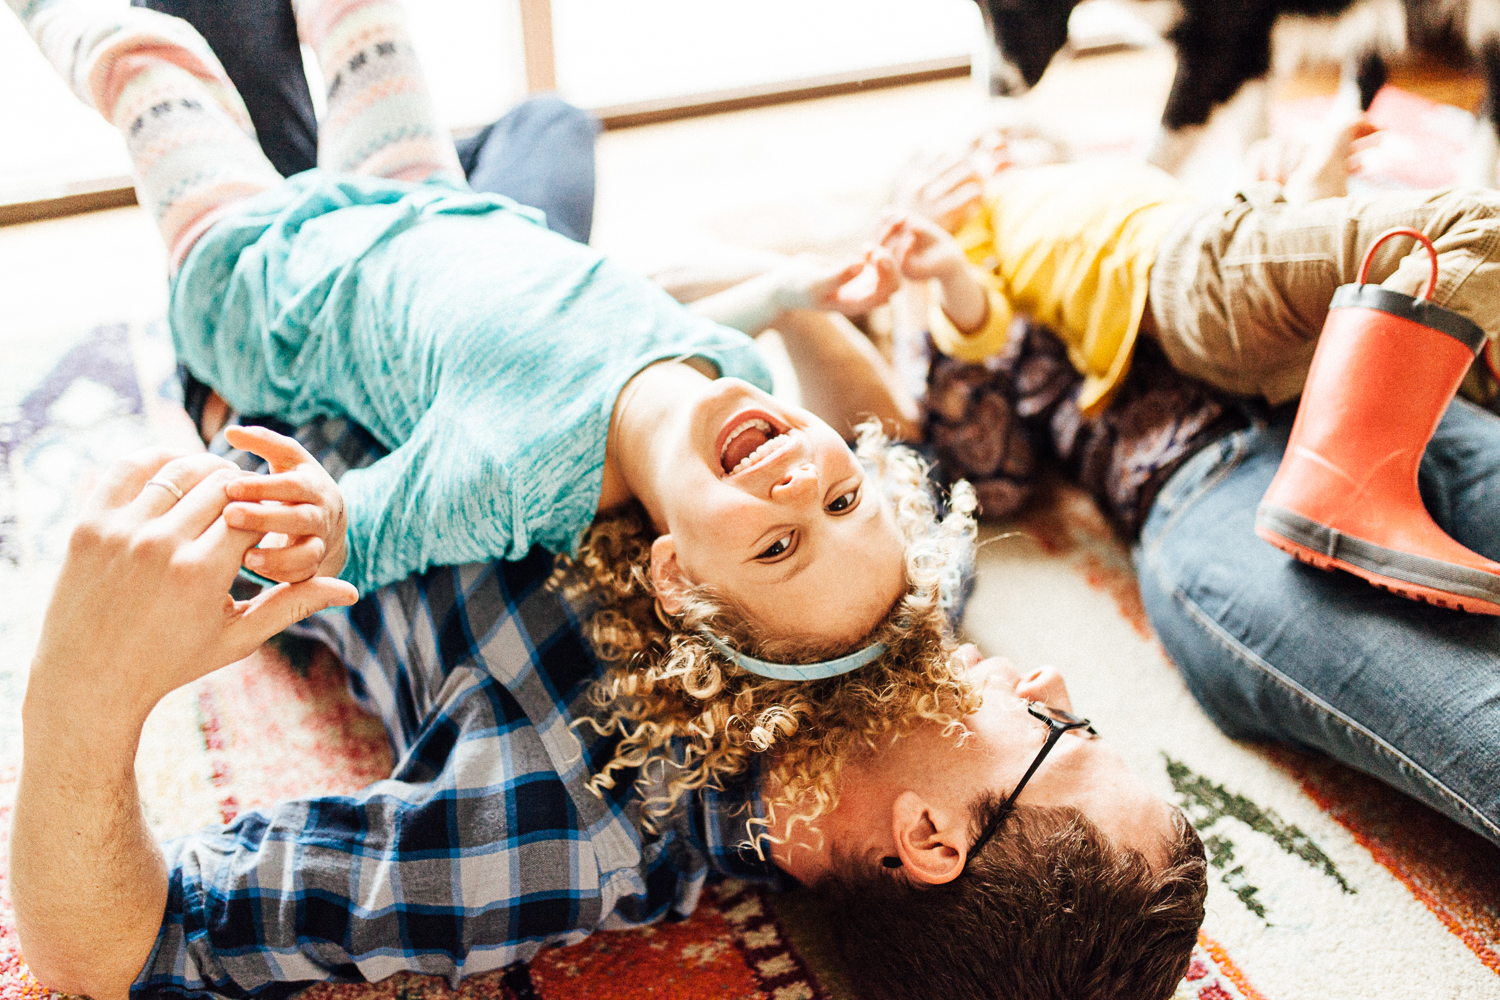 candid-and-natural-family-photograph-at-home-photography-by-jen-fairchild-salt-lake-city-utah